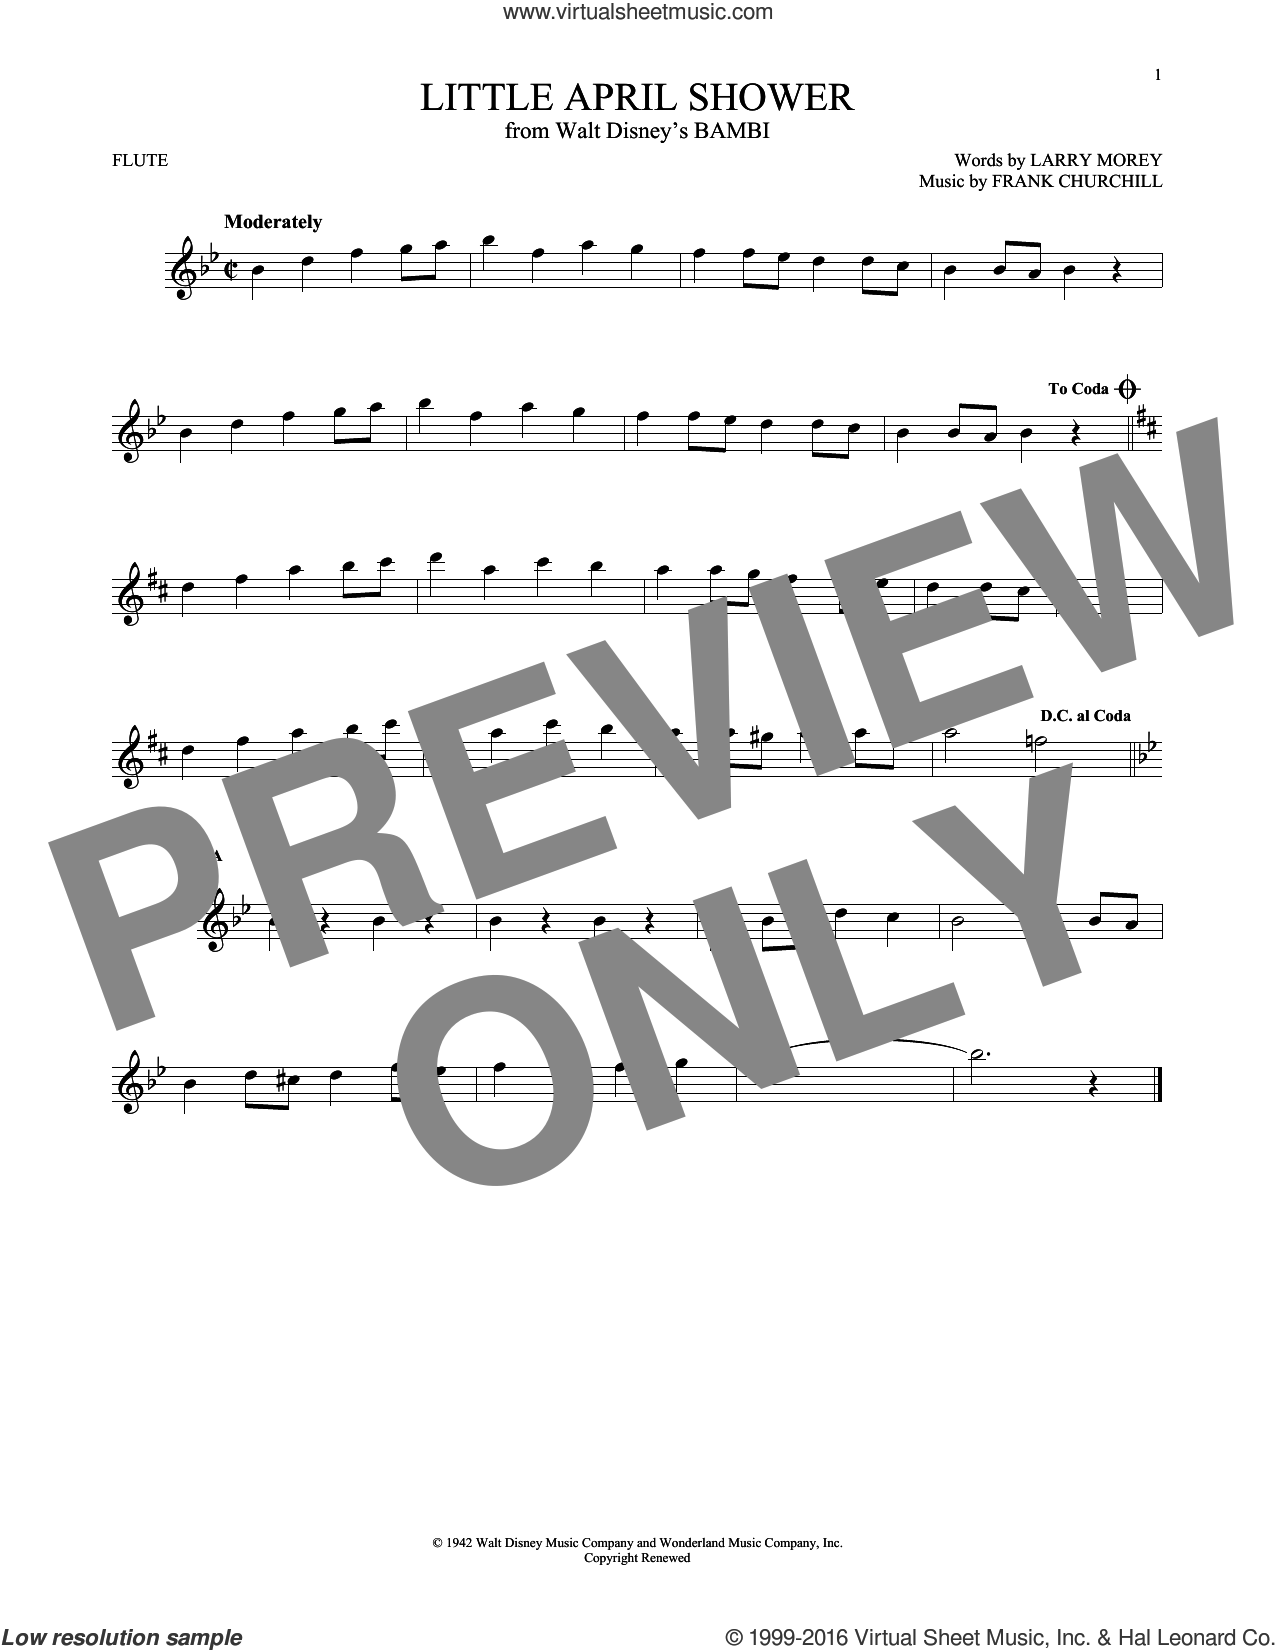 Little April Shower sheet music for flute solo by Larry Morey and Frank Churchill, intermediate